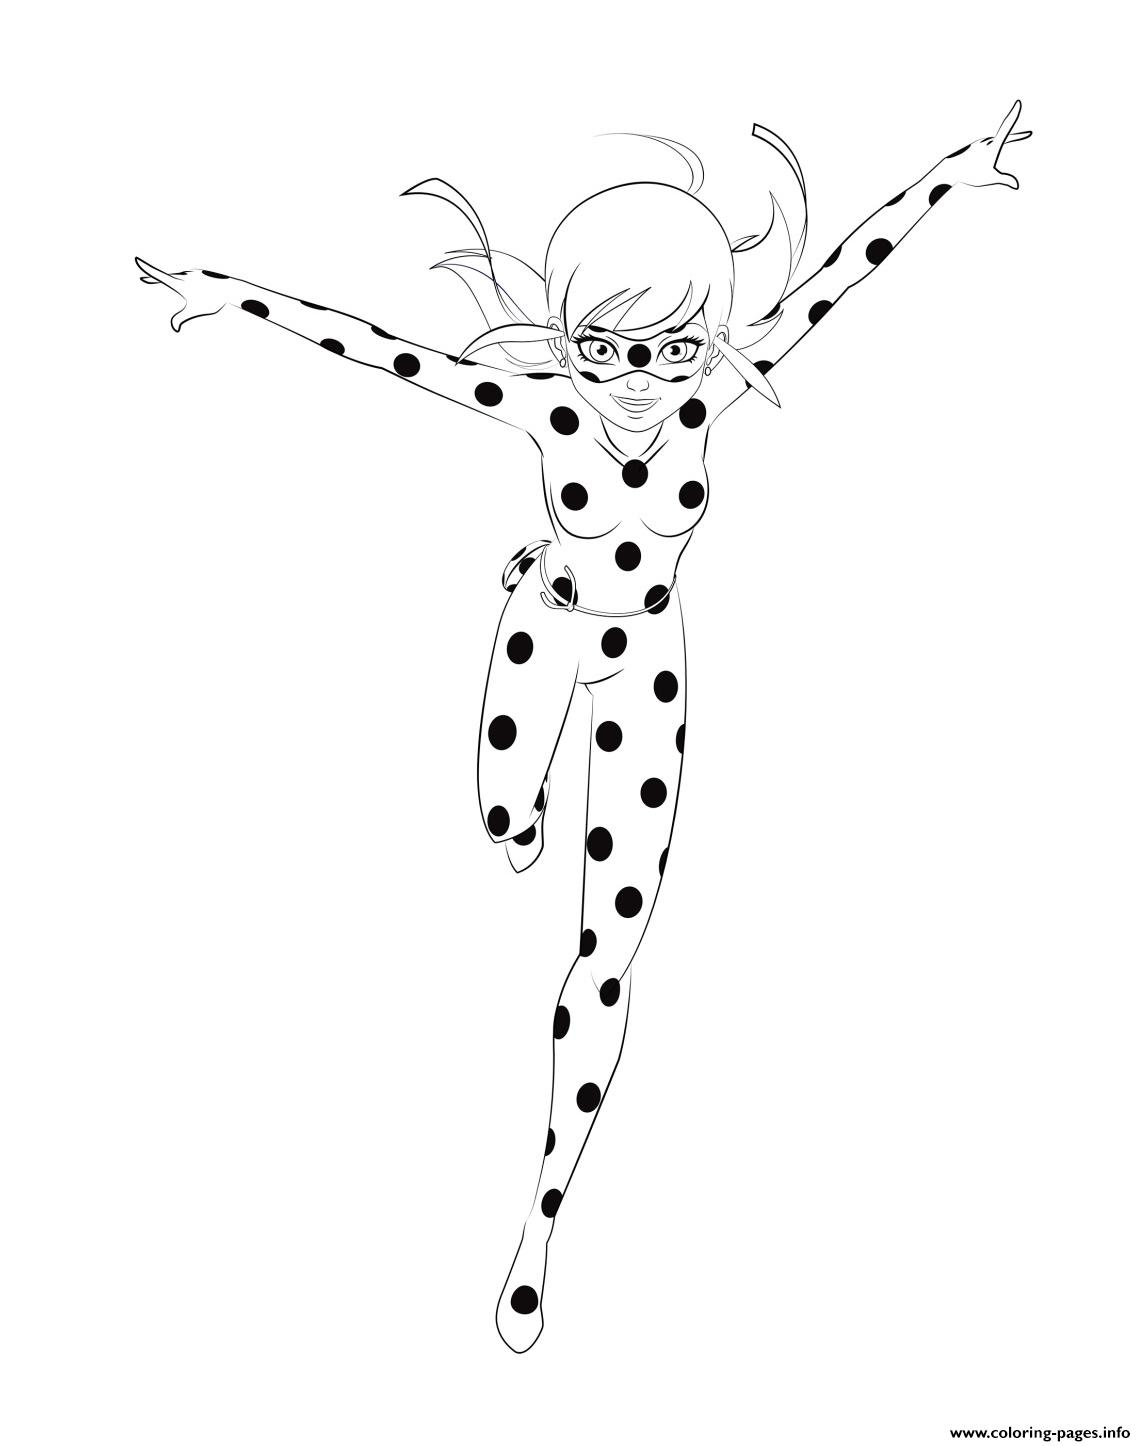 Miraculous Ladybug Is Running Coloring Pages Printable